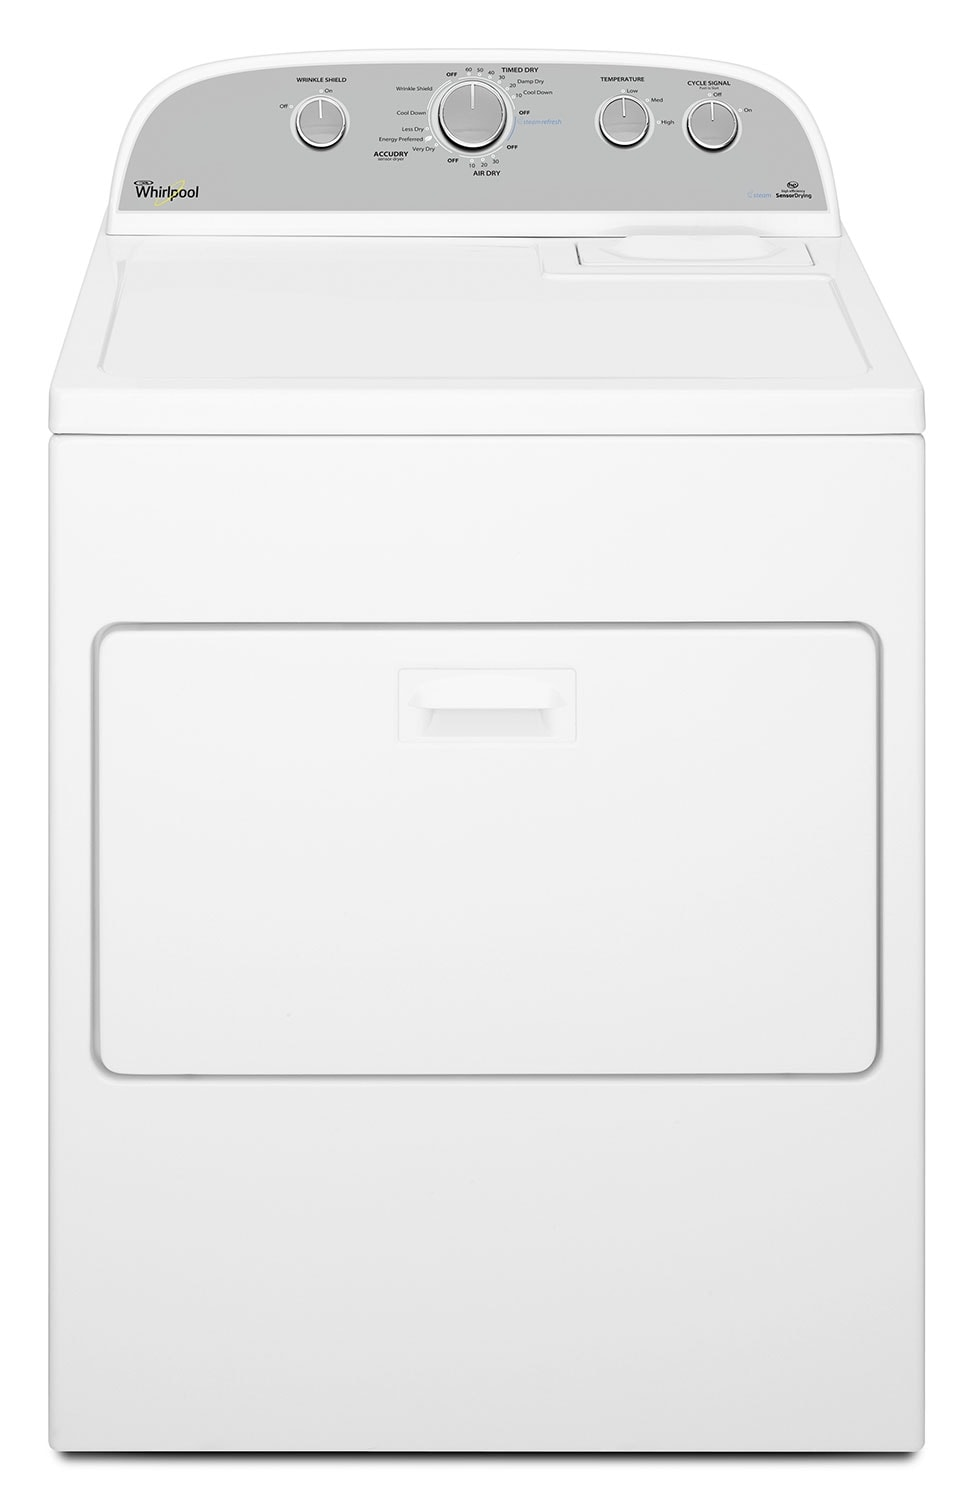 Washers and Dryers - Whirlpool Gas Dryer (7.0 Cu. Ft.) WGD49STBW